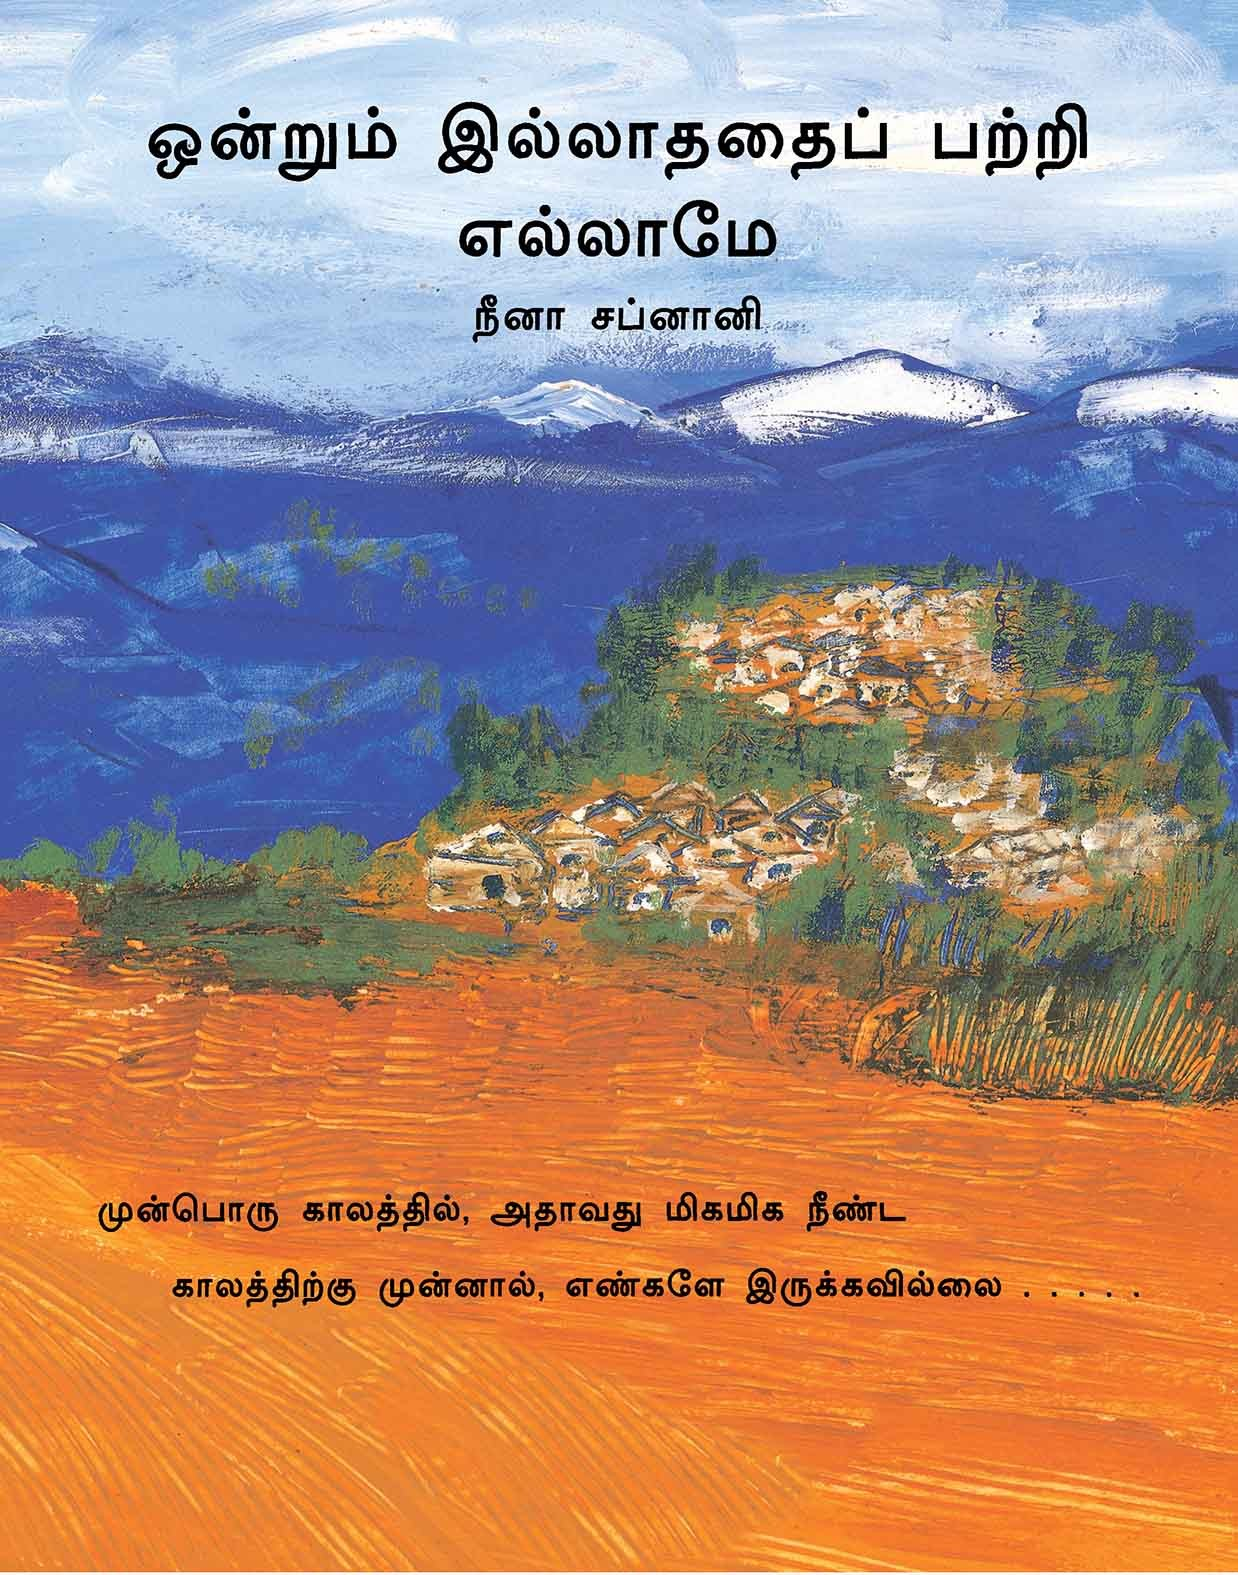 All About Nothing/Ondrum Illadaipattrai Yellamay (Tamil)